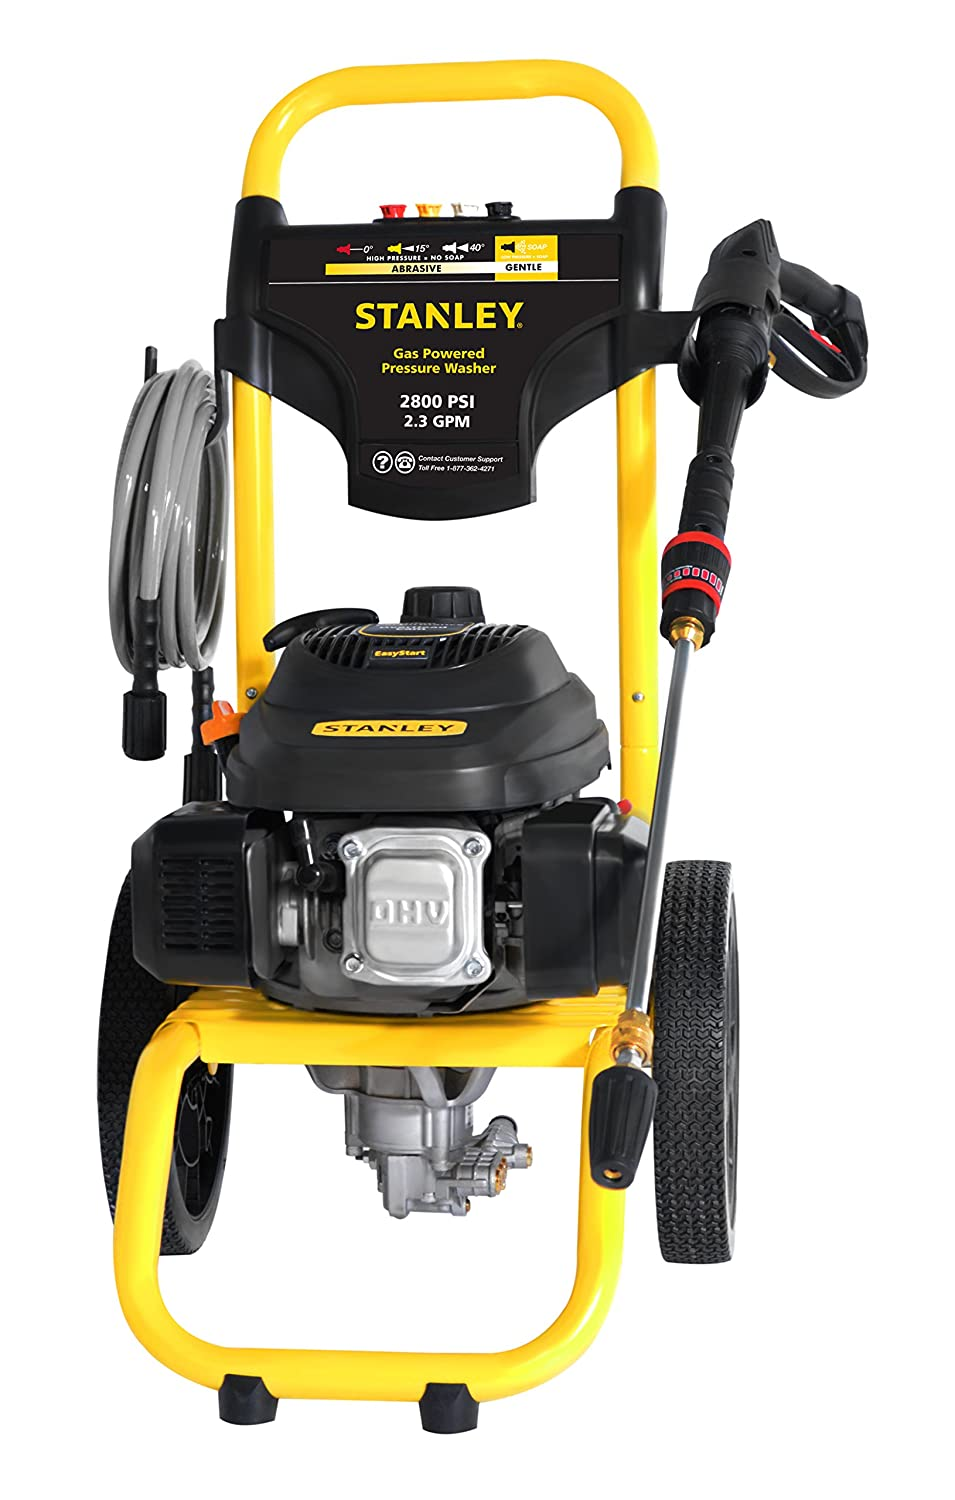 Amazon.com : STANLEY SXPW2823 2800 PSI @ 2.3 GPM Gas Pressure Washer  Powered by STANLEY (50-State) : Garden & Outdoor